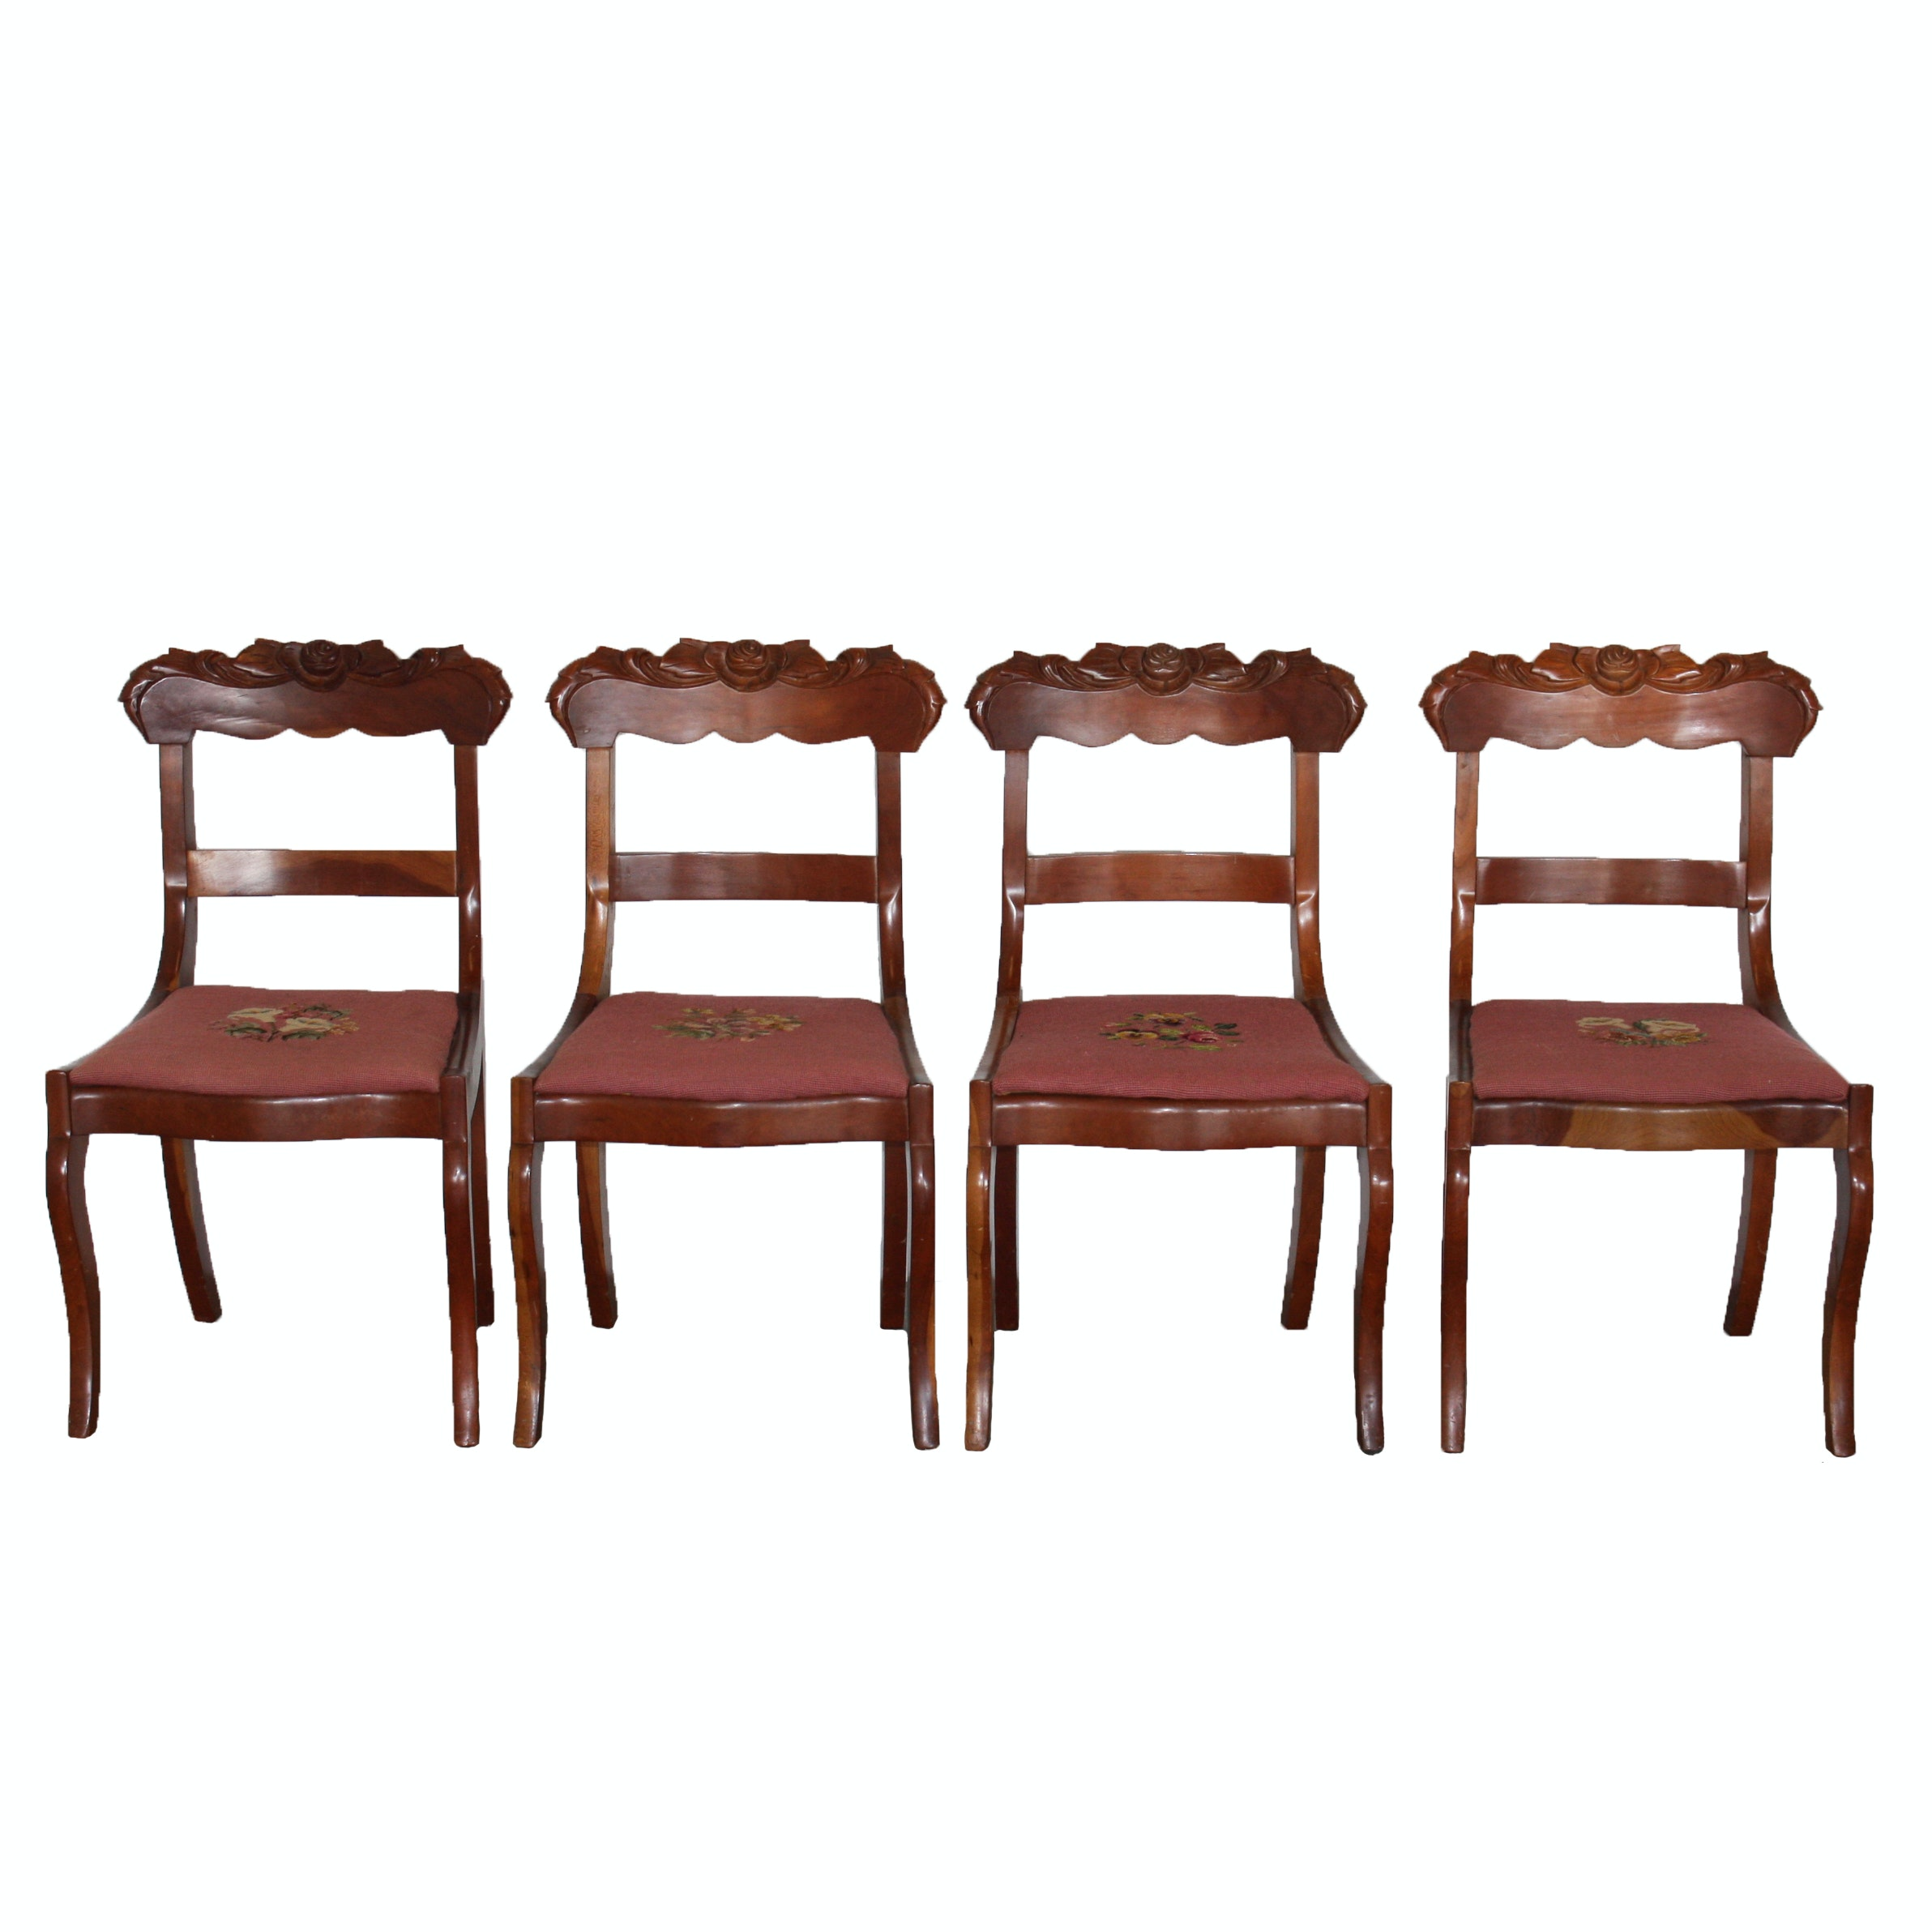 Four Vintage Victorian Style Cherry Side Chairs with Needlepoint Seats